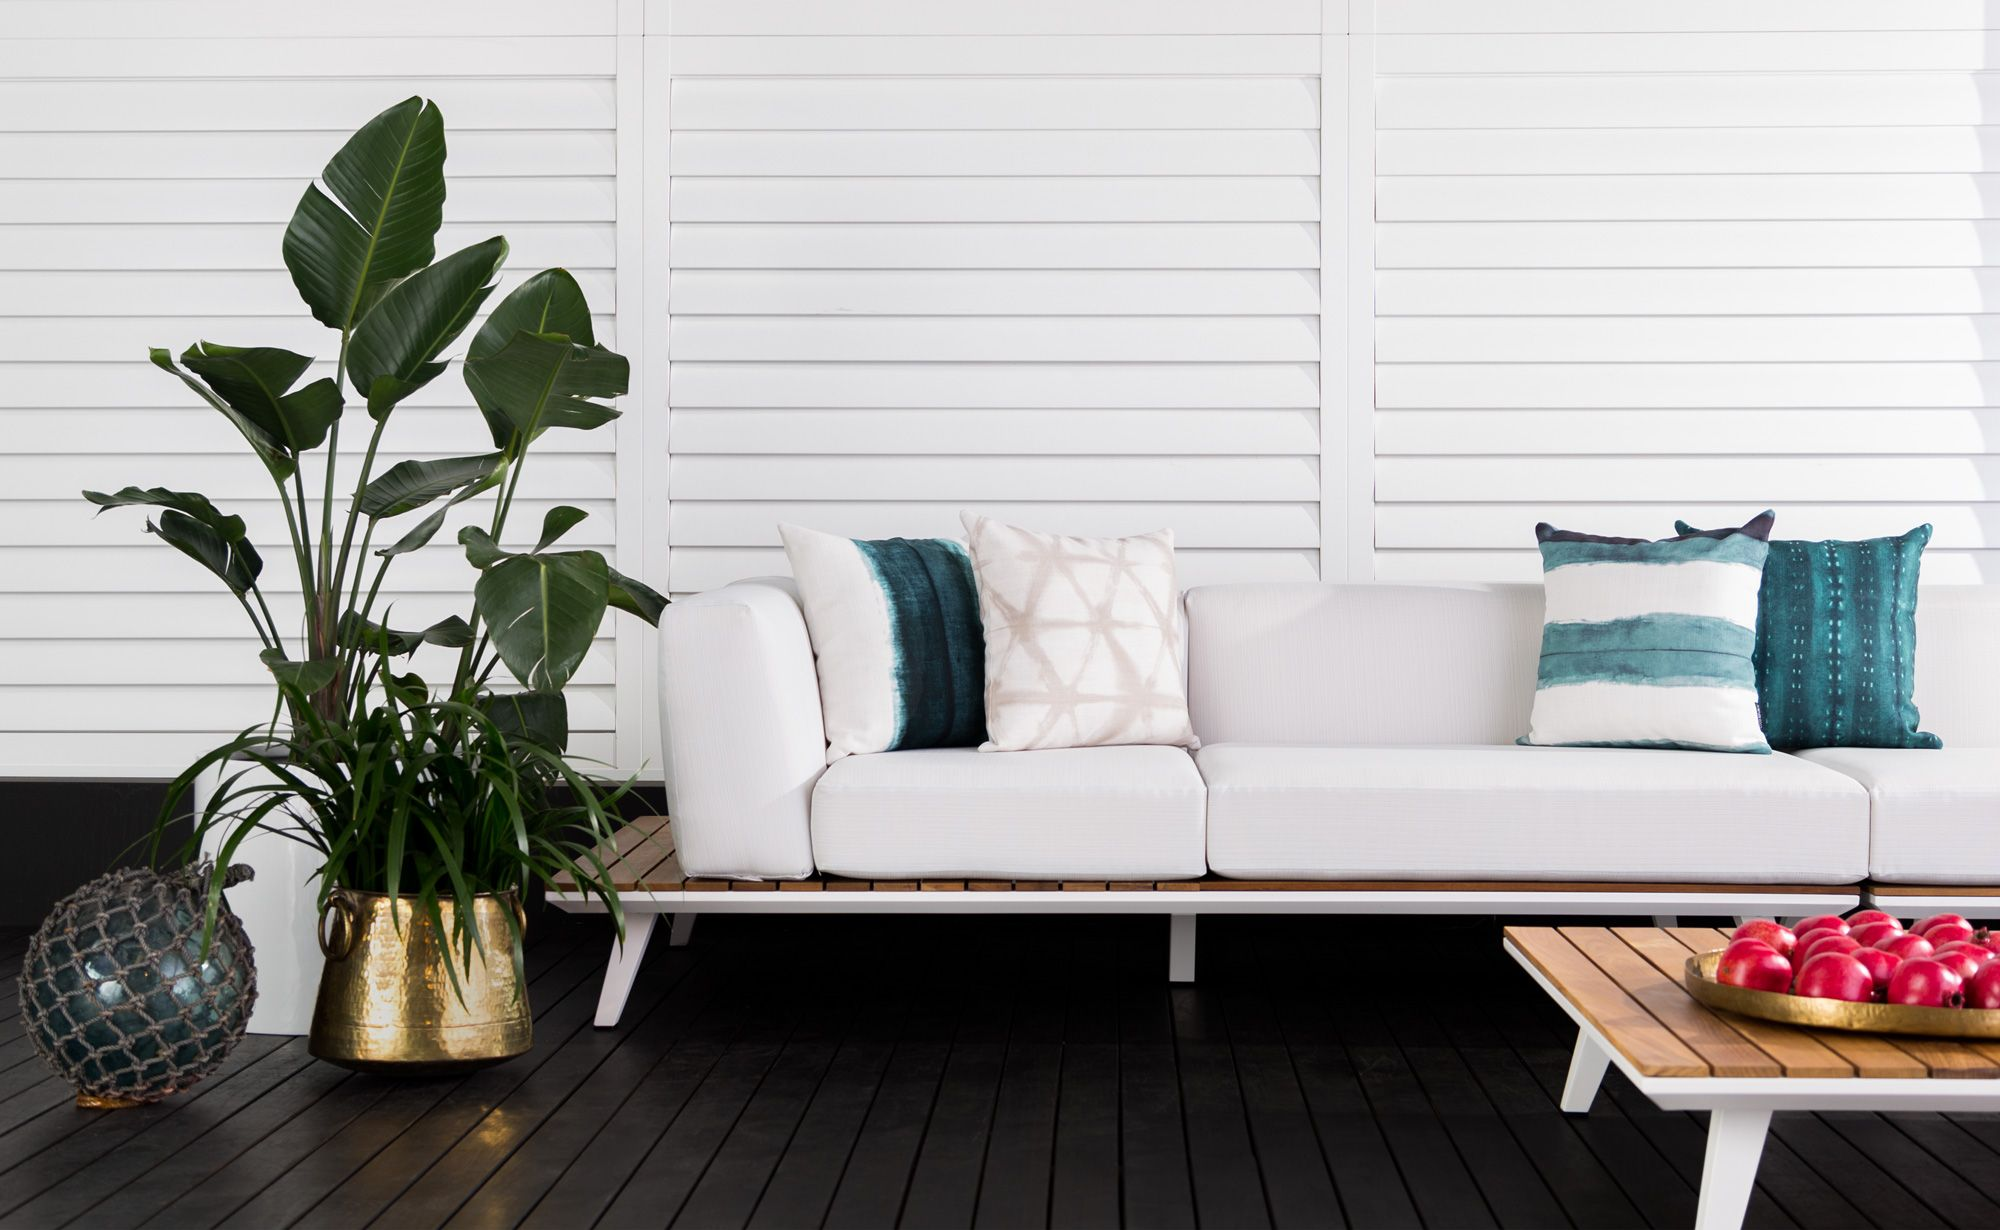 Summer Inspiration: Coco Republic's new outdoor Bahama Outdoor Modular Lounge and Shibori Cushion collection update any deck, veranda or courtyard space with stylish results. #CocoRepublic #ScatterCushions #Outdoor #Style #Home #Lounge